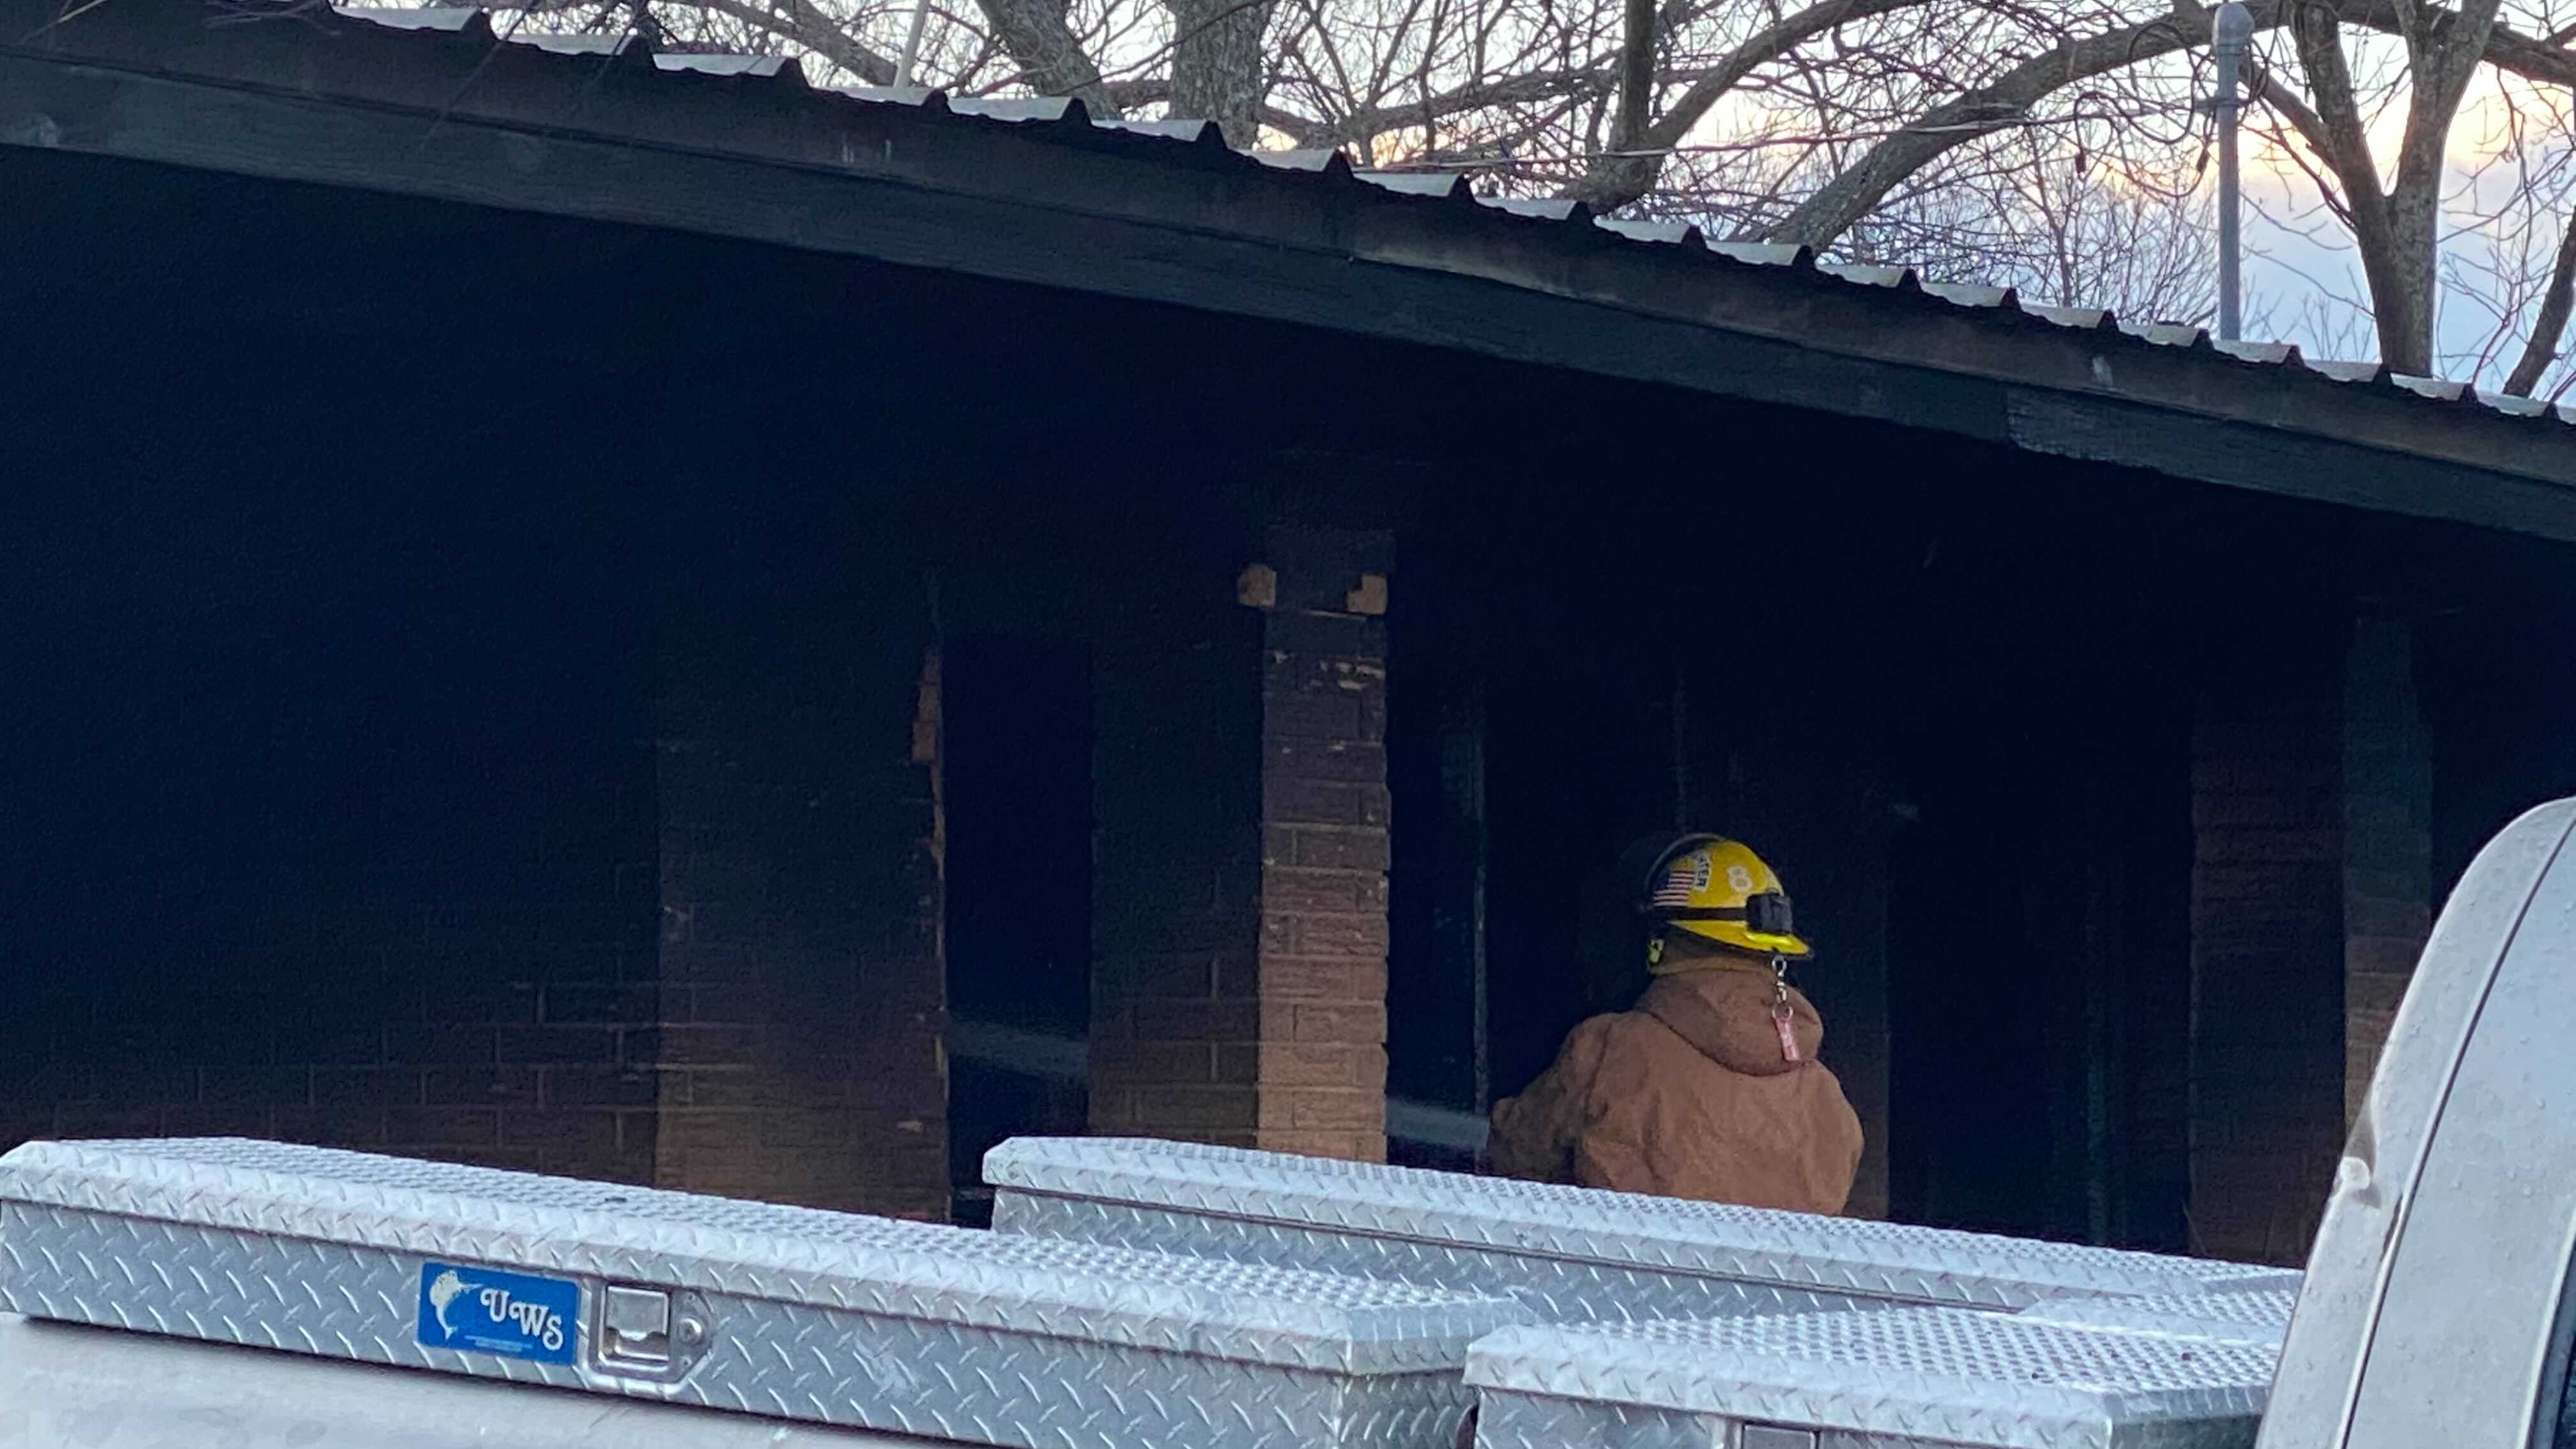 Ranck Avenue, Mason House Fire